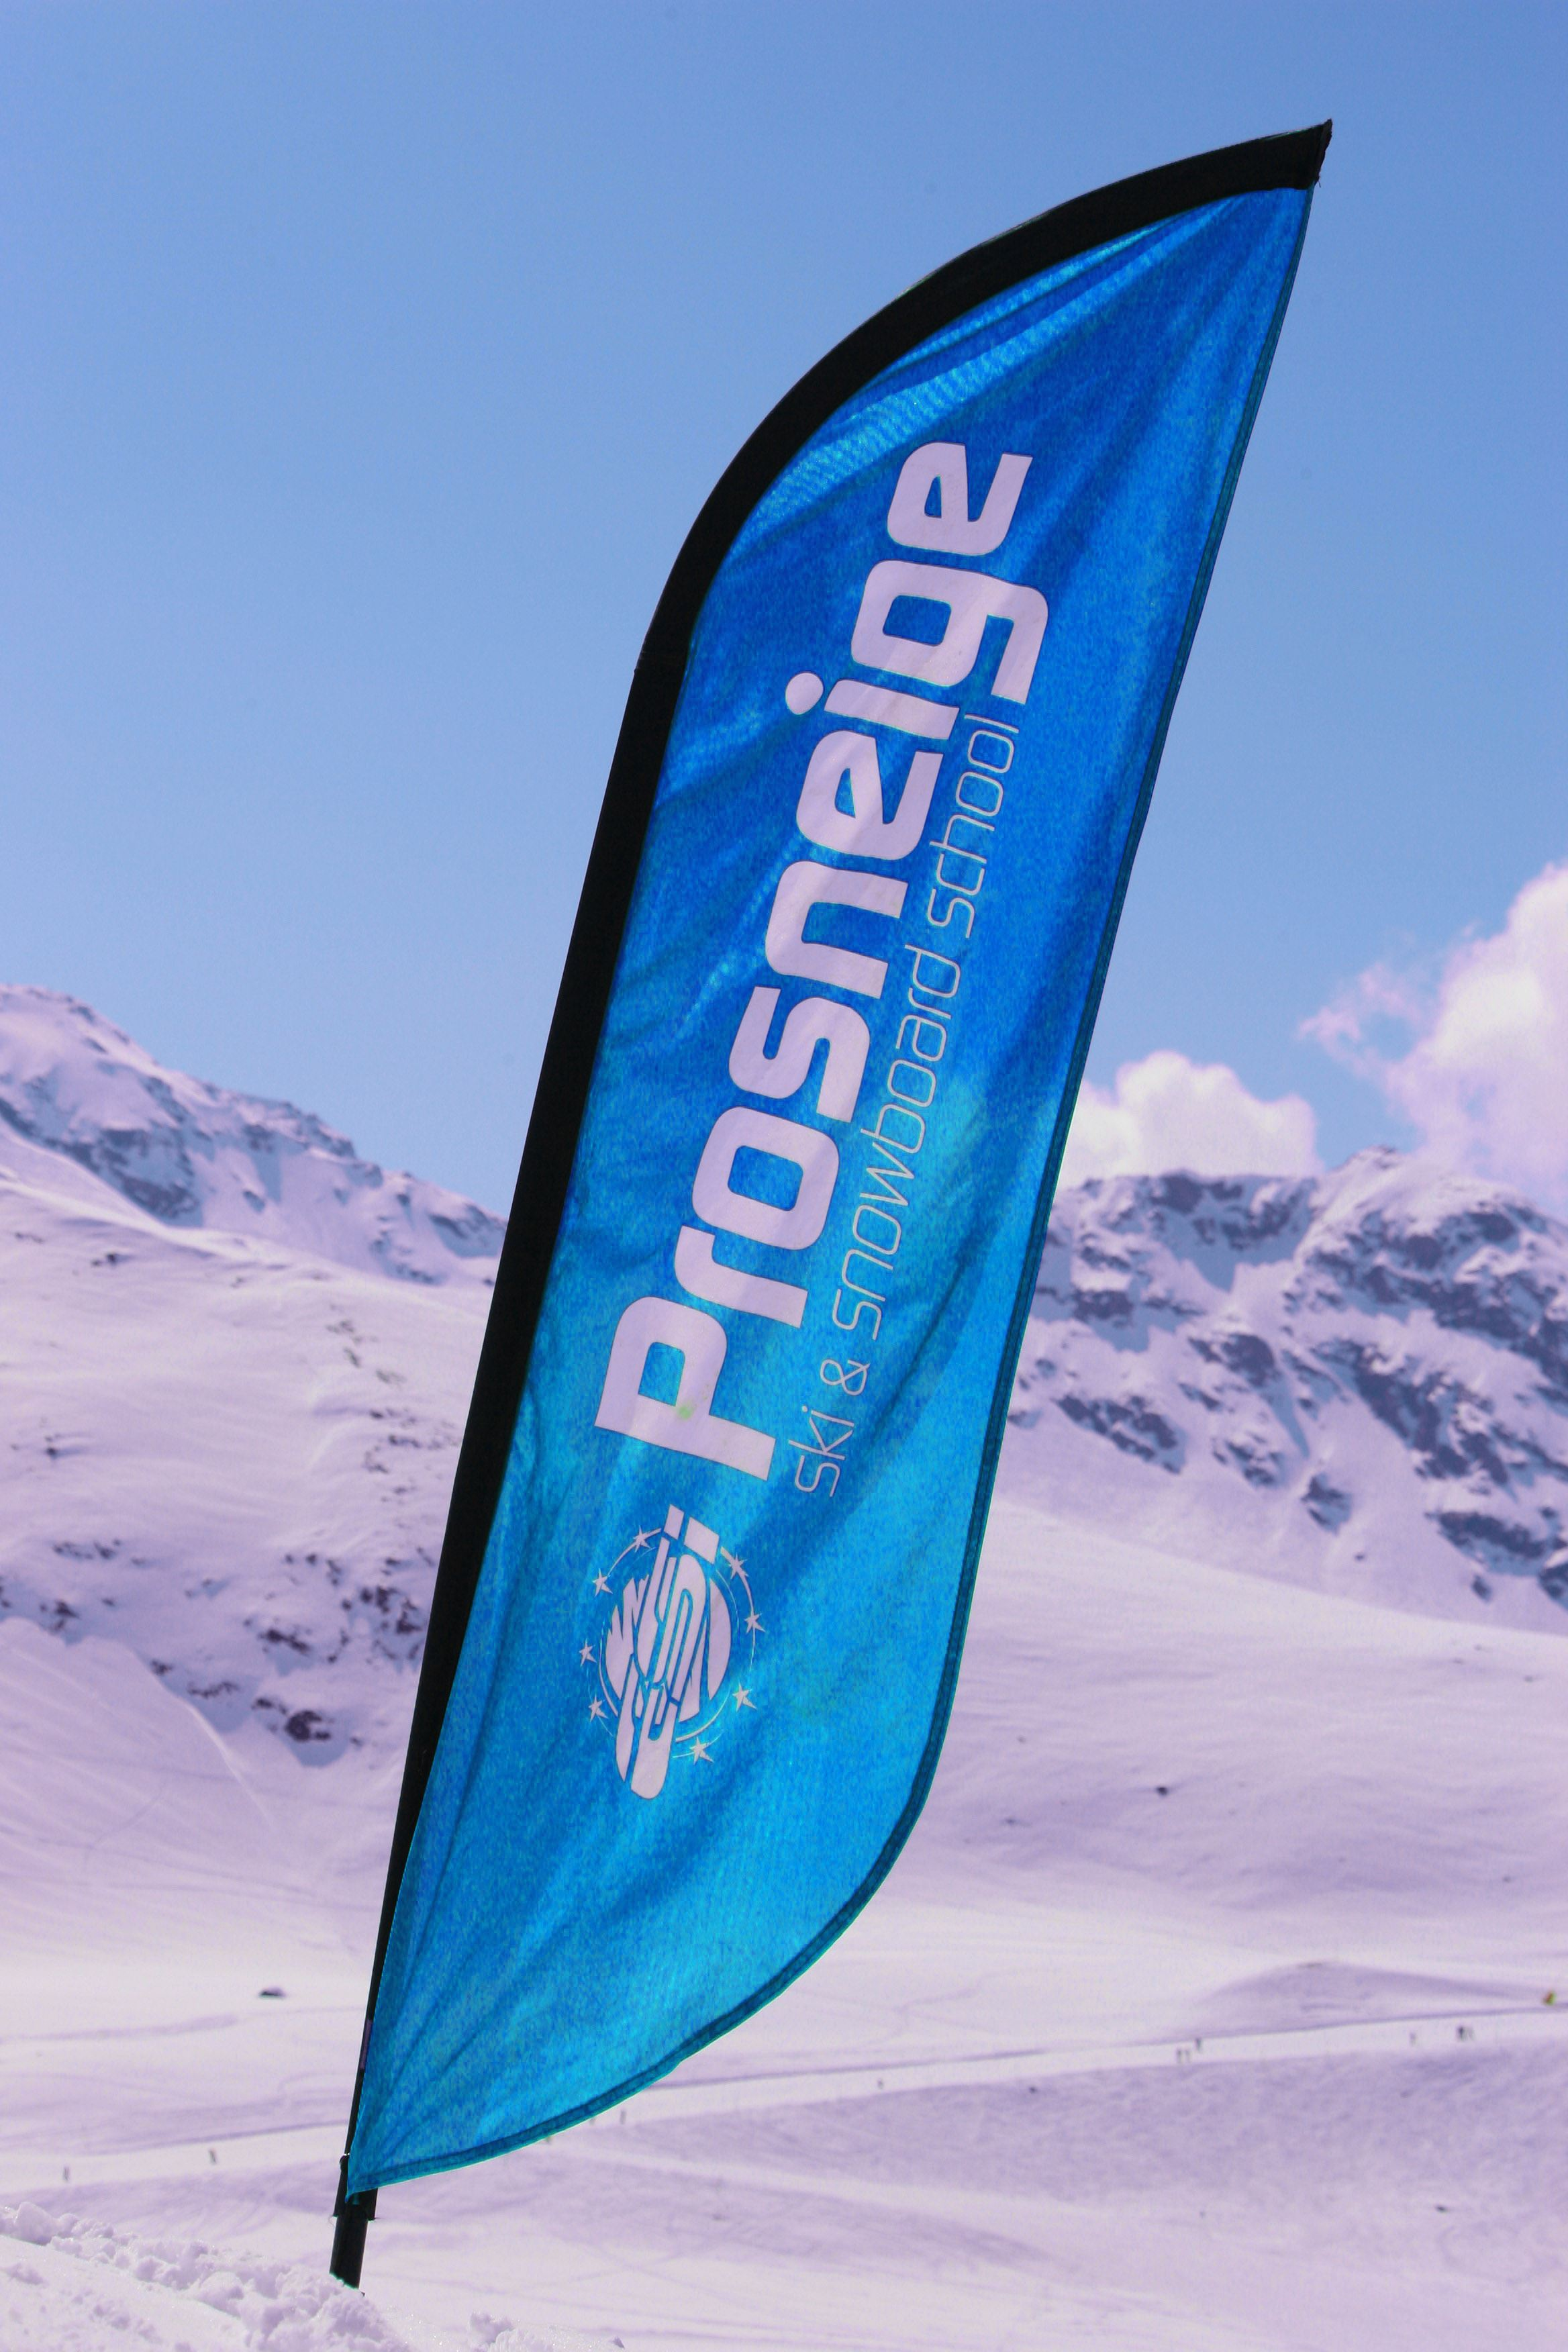 PROSNEIGE SKI SCHOOL - Afternoon Group lessons - Prosneige